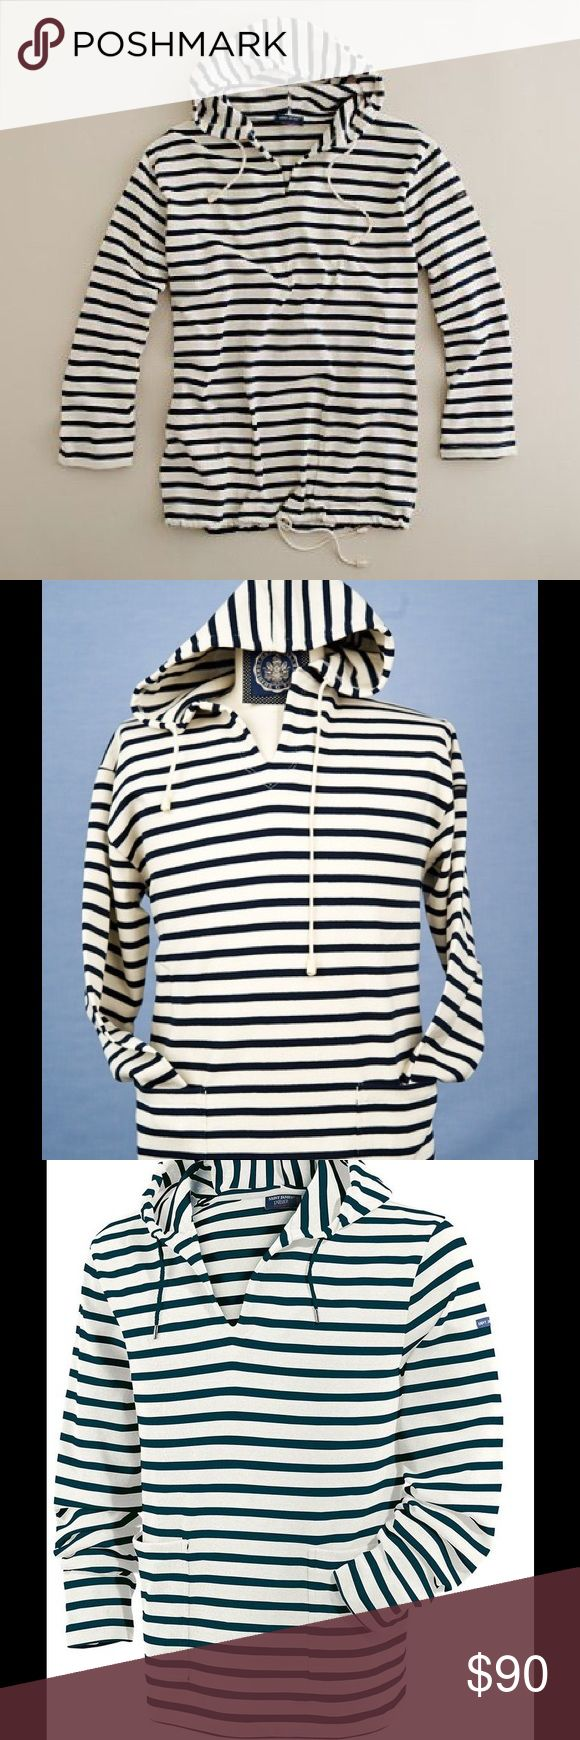 J. Crew X Saint James Nautical Pullover Hoodie EUC, rarely worn. J. Crew and Saint James combined to create this nautical hoodie. Crafted in cotton by Saint James, reknowned for their knit shirts since 1850. Thick & durable 100% cotton. Slightly slouchy. Front pockets & long sleeves. Unisex-Men's small, Women's roomy medium or fitted large. Please submit reasonable offers via the 'Offer' function. NO negotiating in the comments section. NO trading or alternate site transactions. All items…